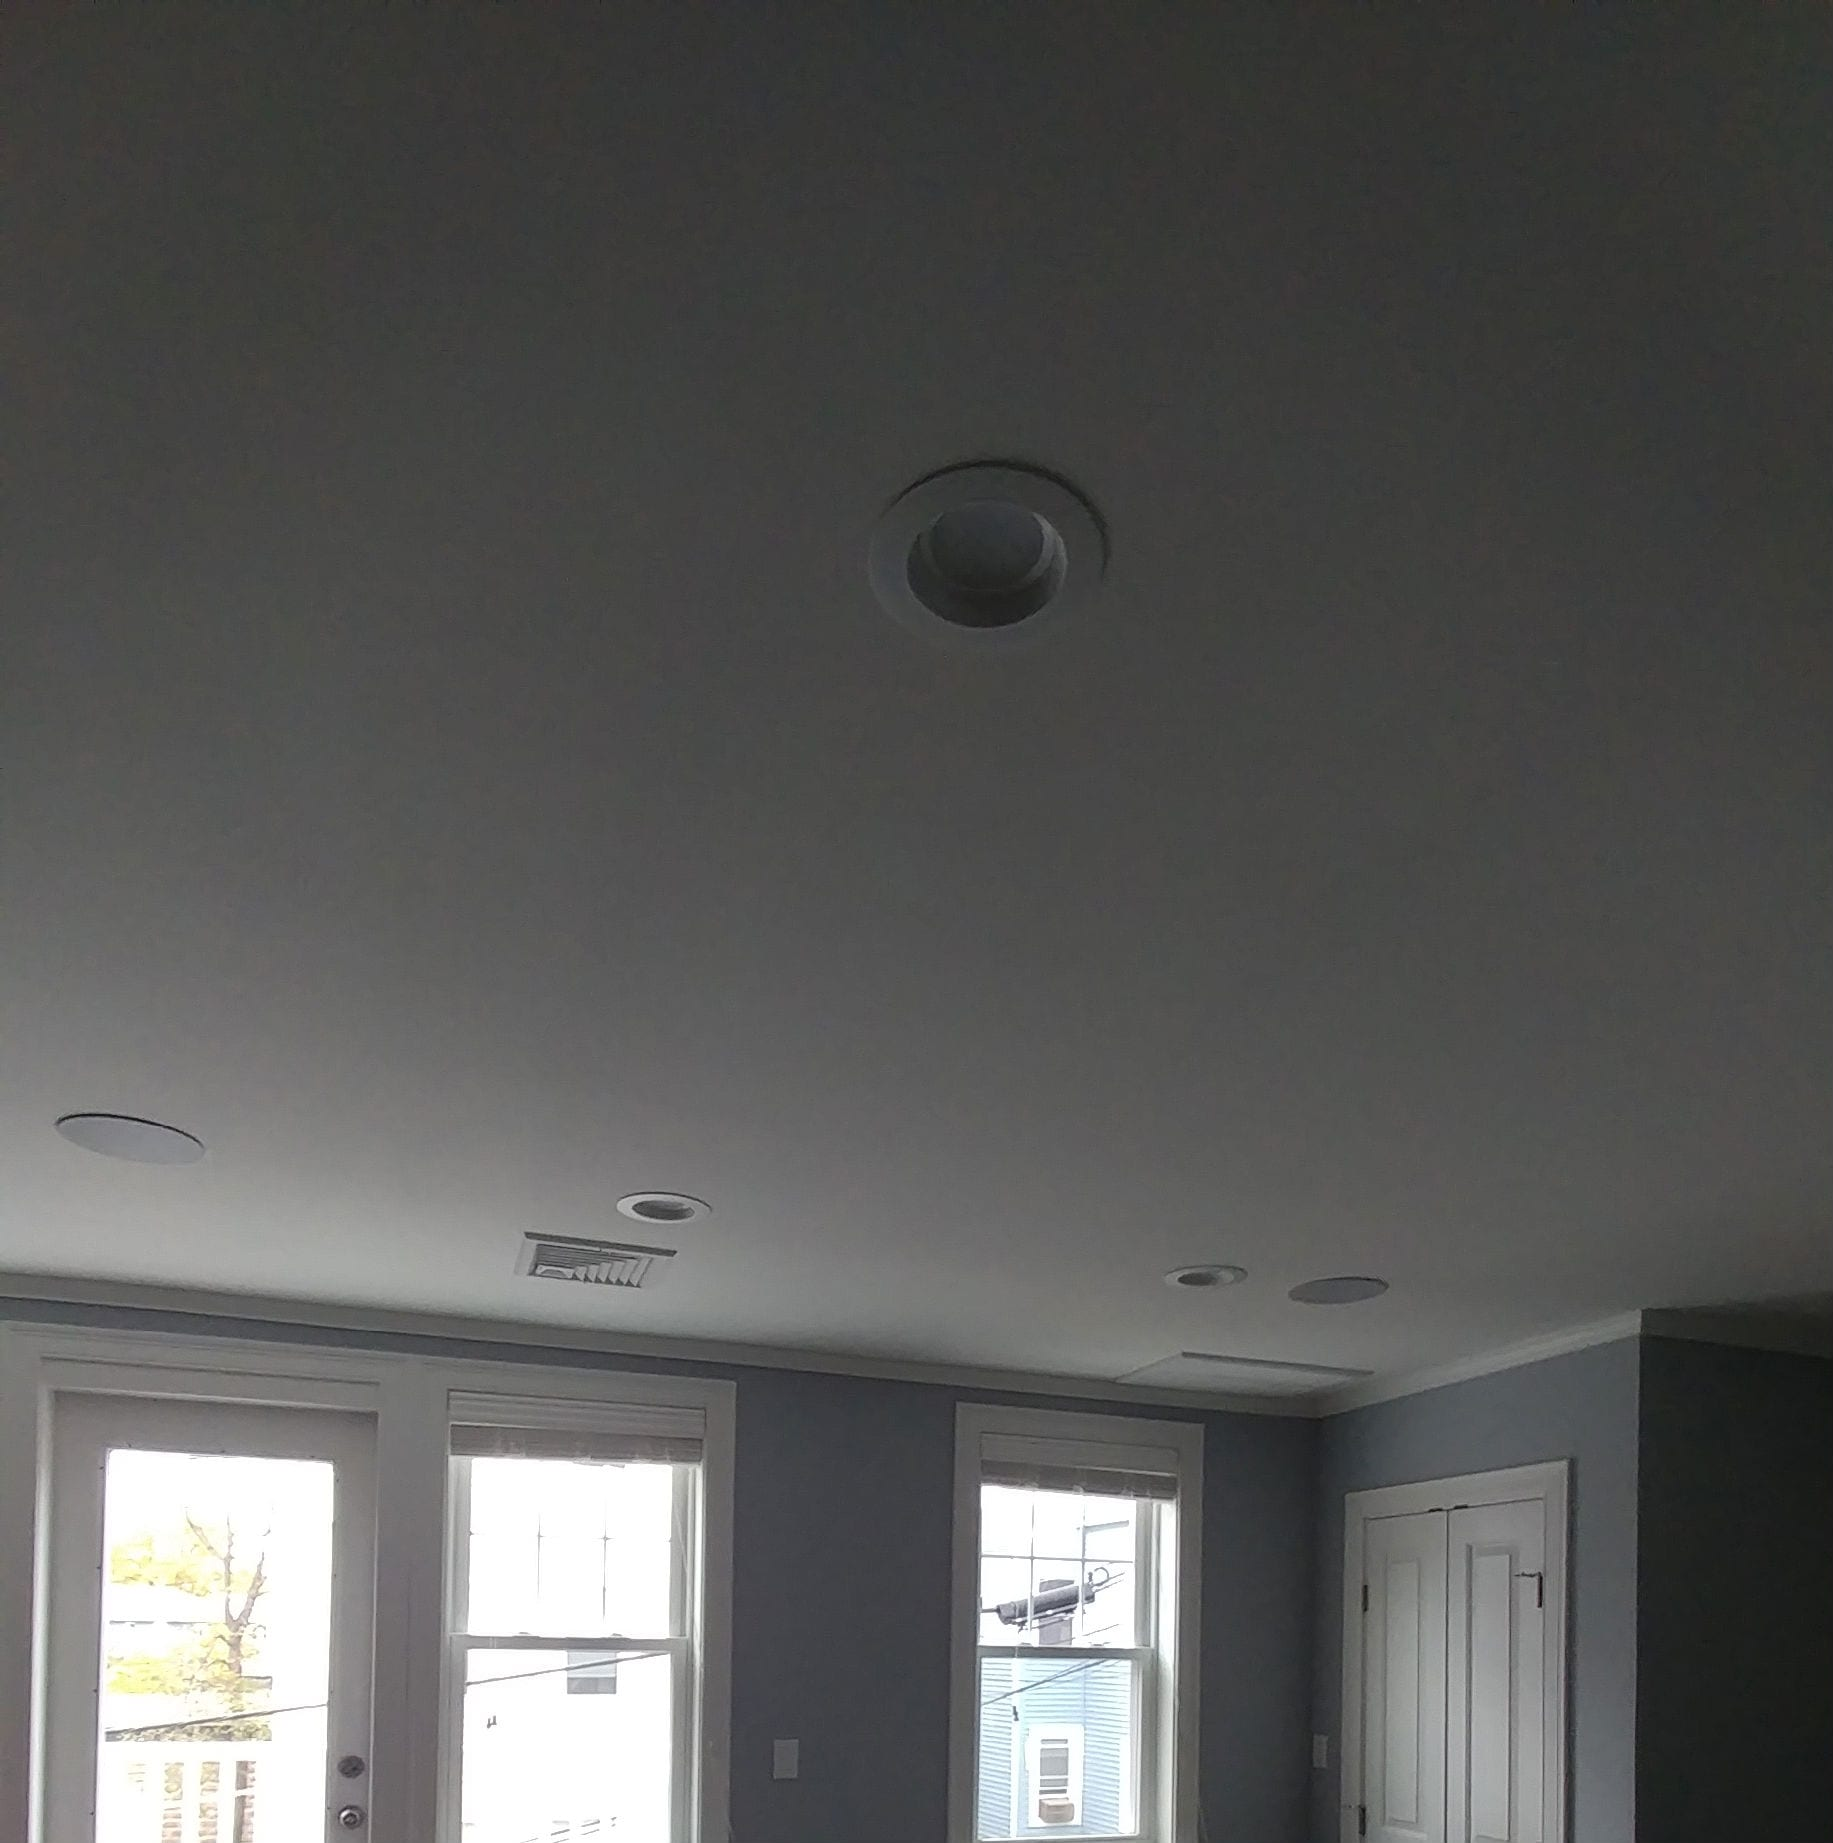 Dana St, Somervile - Residential HVAC Project